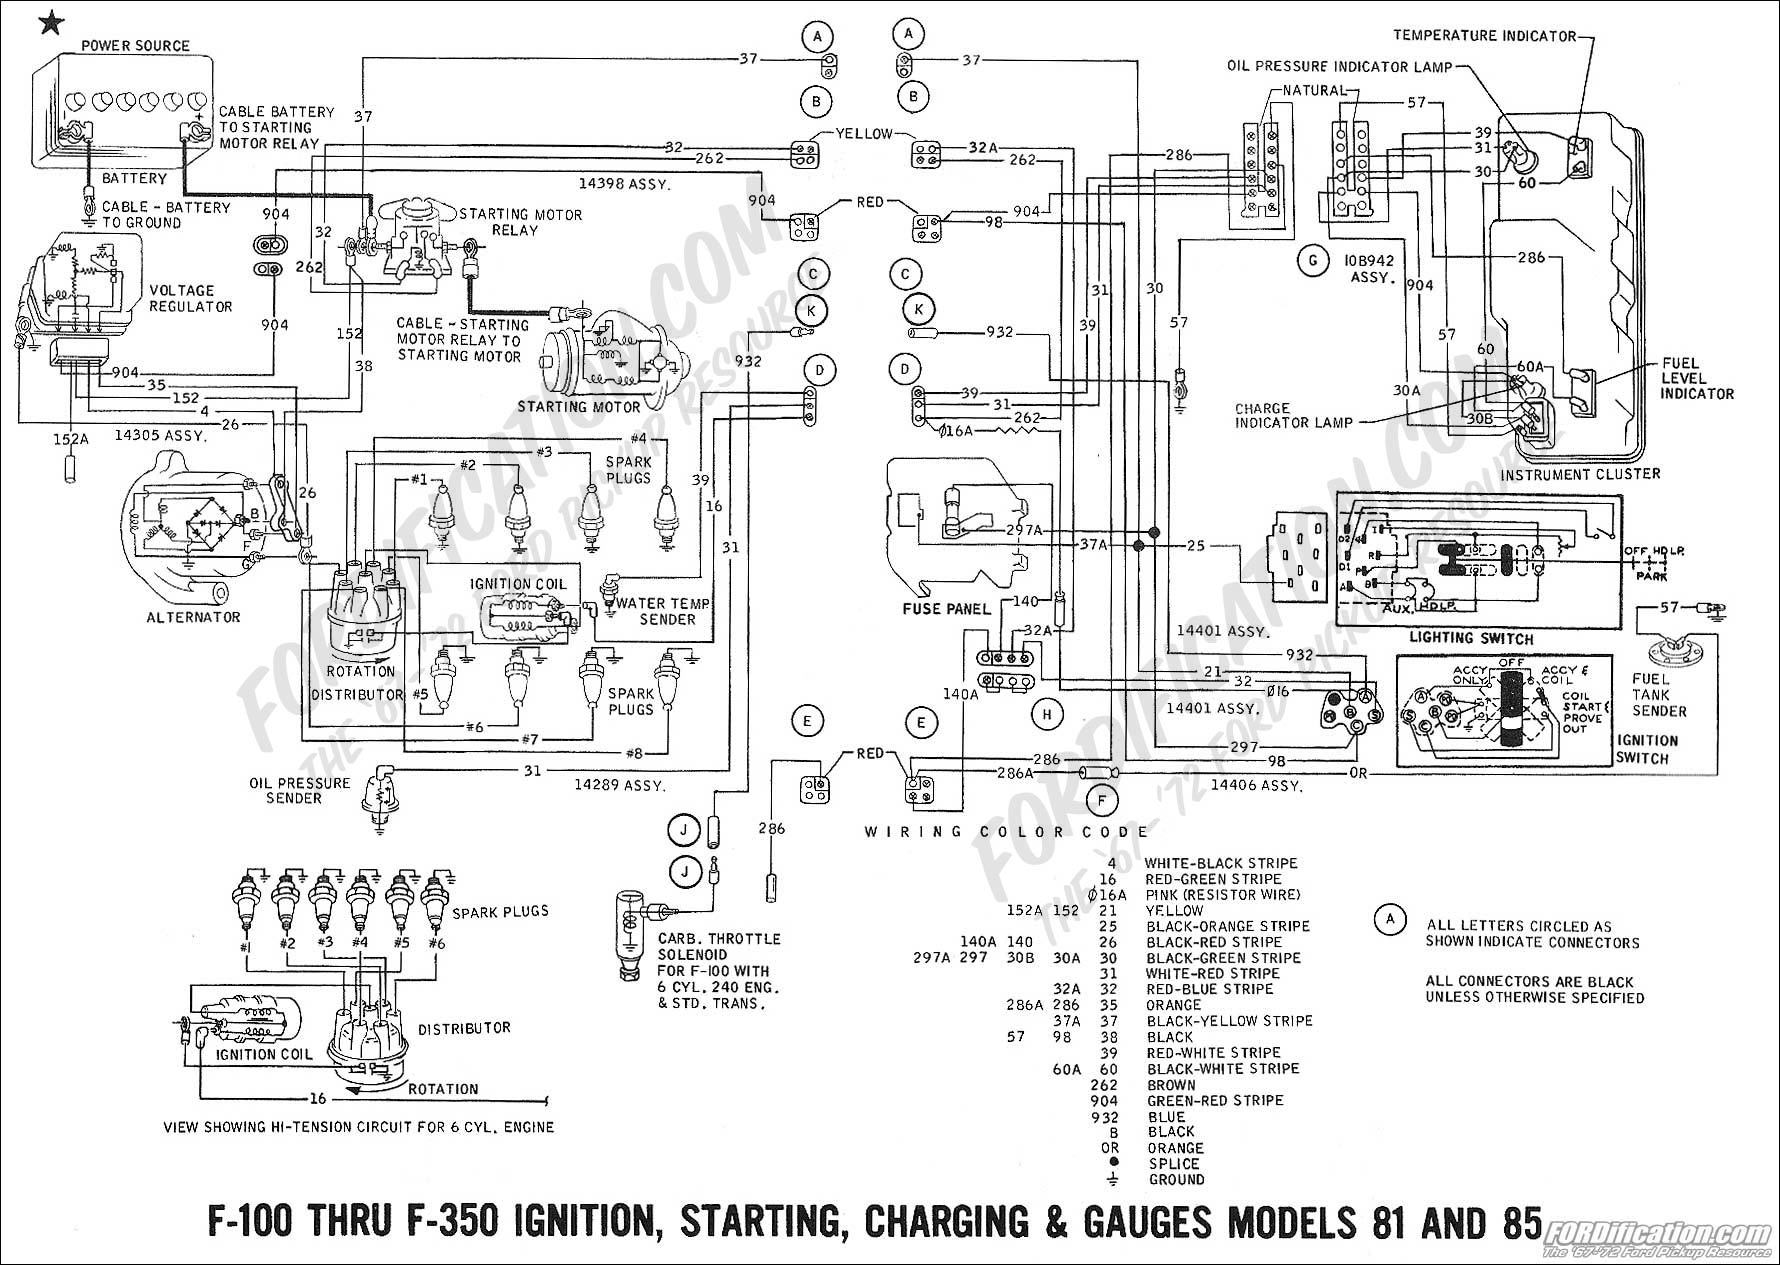 hight resolution of wrg 7265 pdf download 1955 ford f250 wiring diagram best books 2001 f250 wiring diagram wiring diagram 1955 ford f250